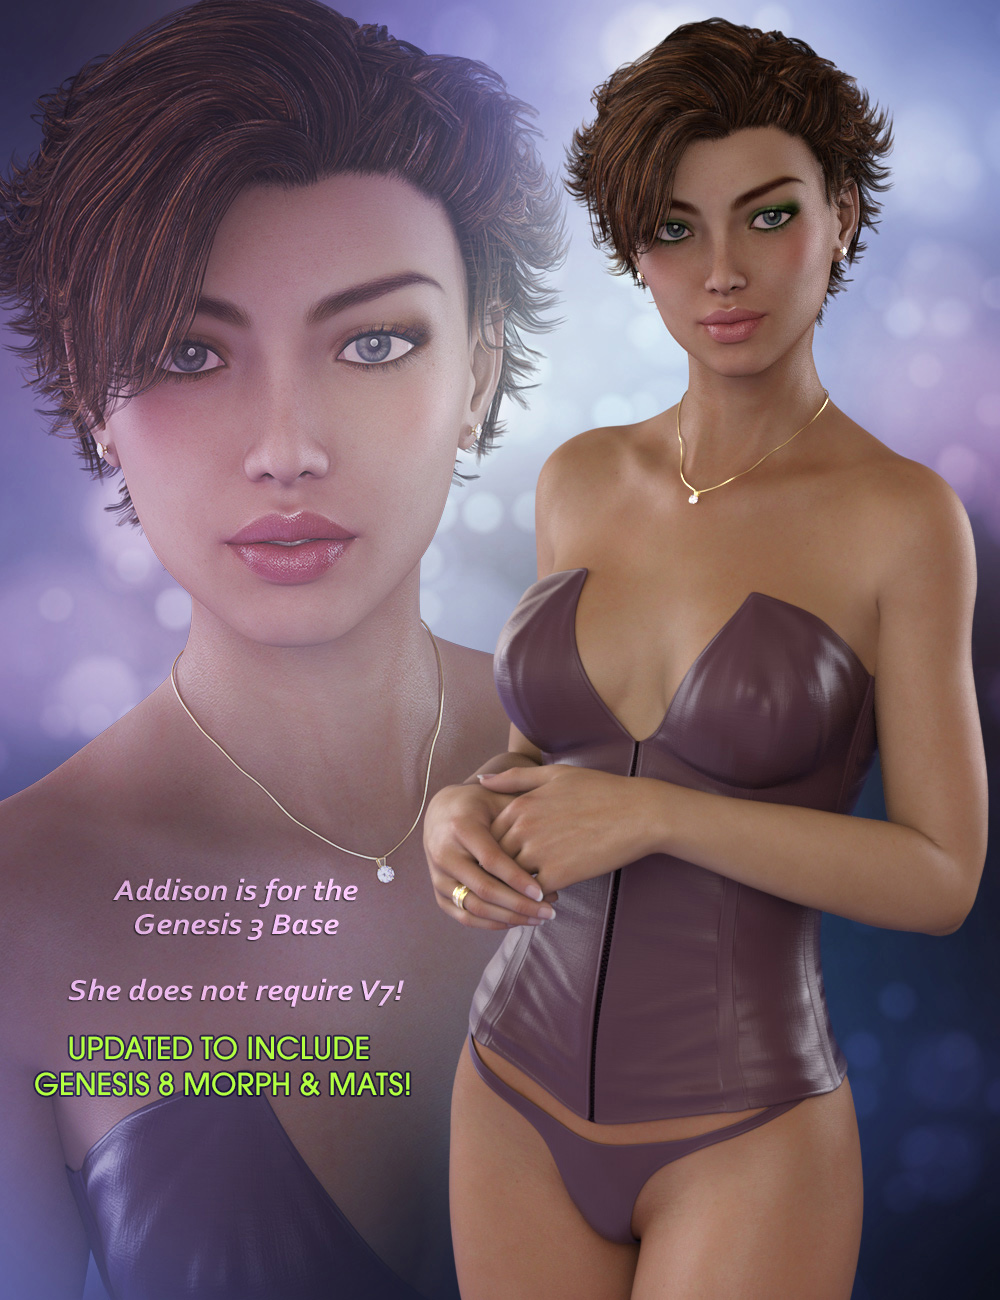 Addison for Genesis 3 & Genesis 8 Females